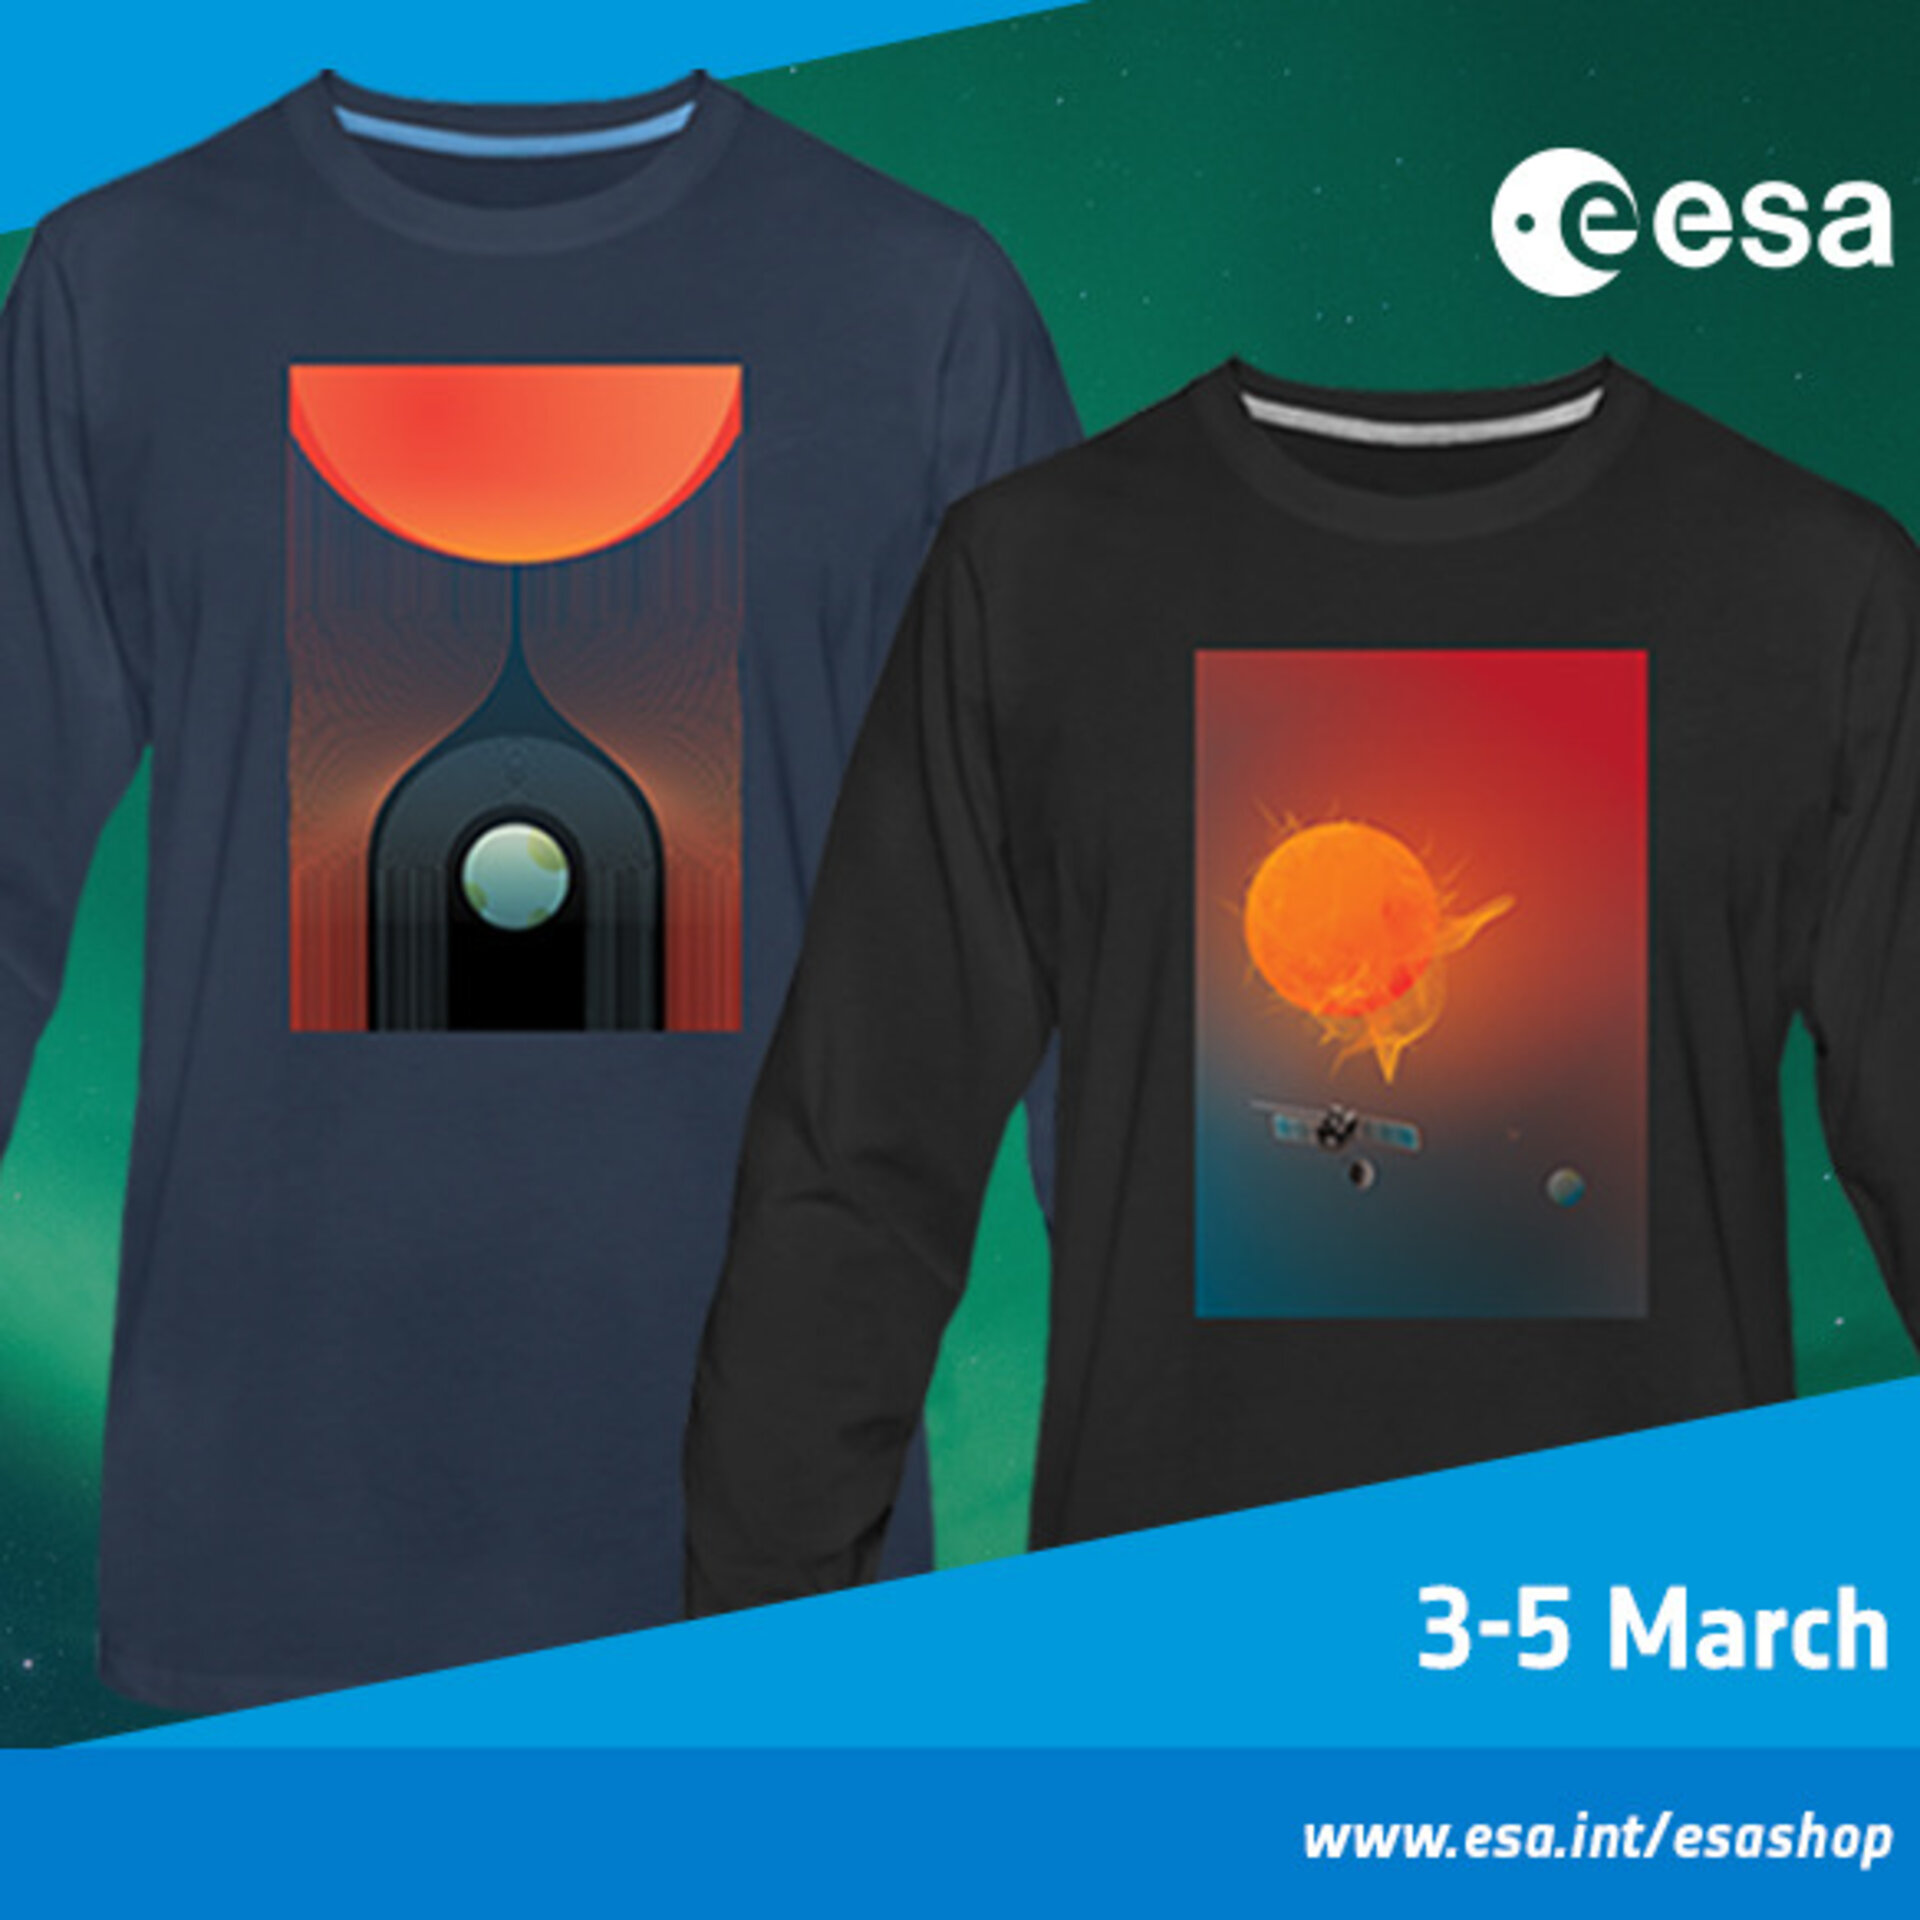 Space weather days in the ESA shop